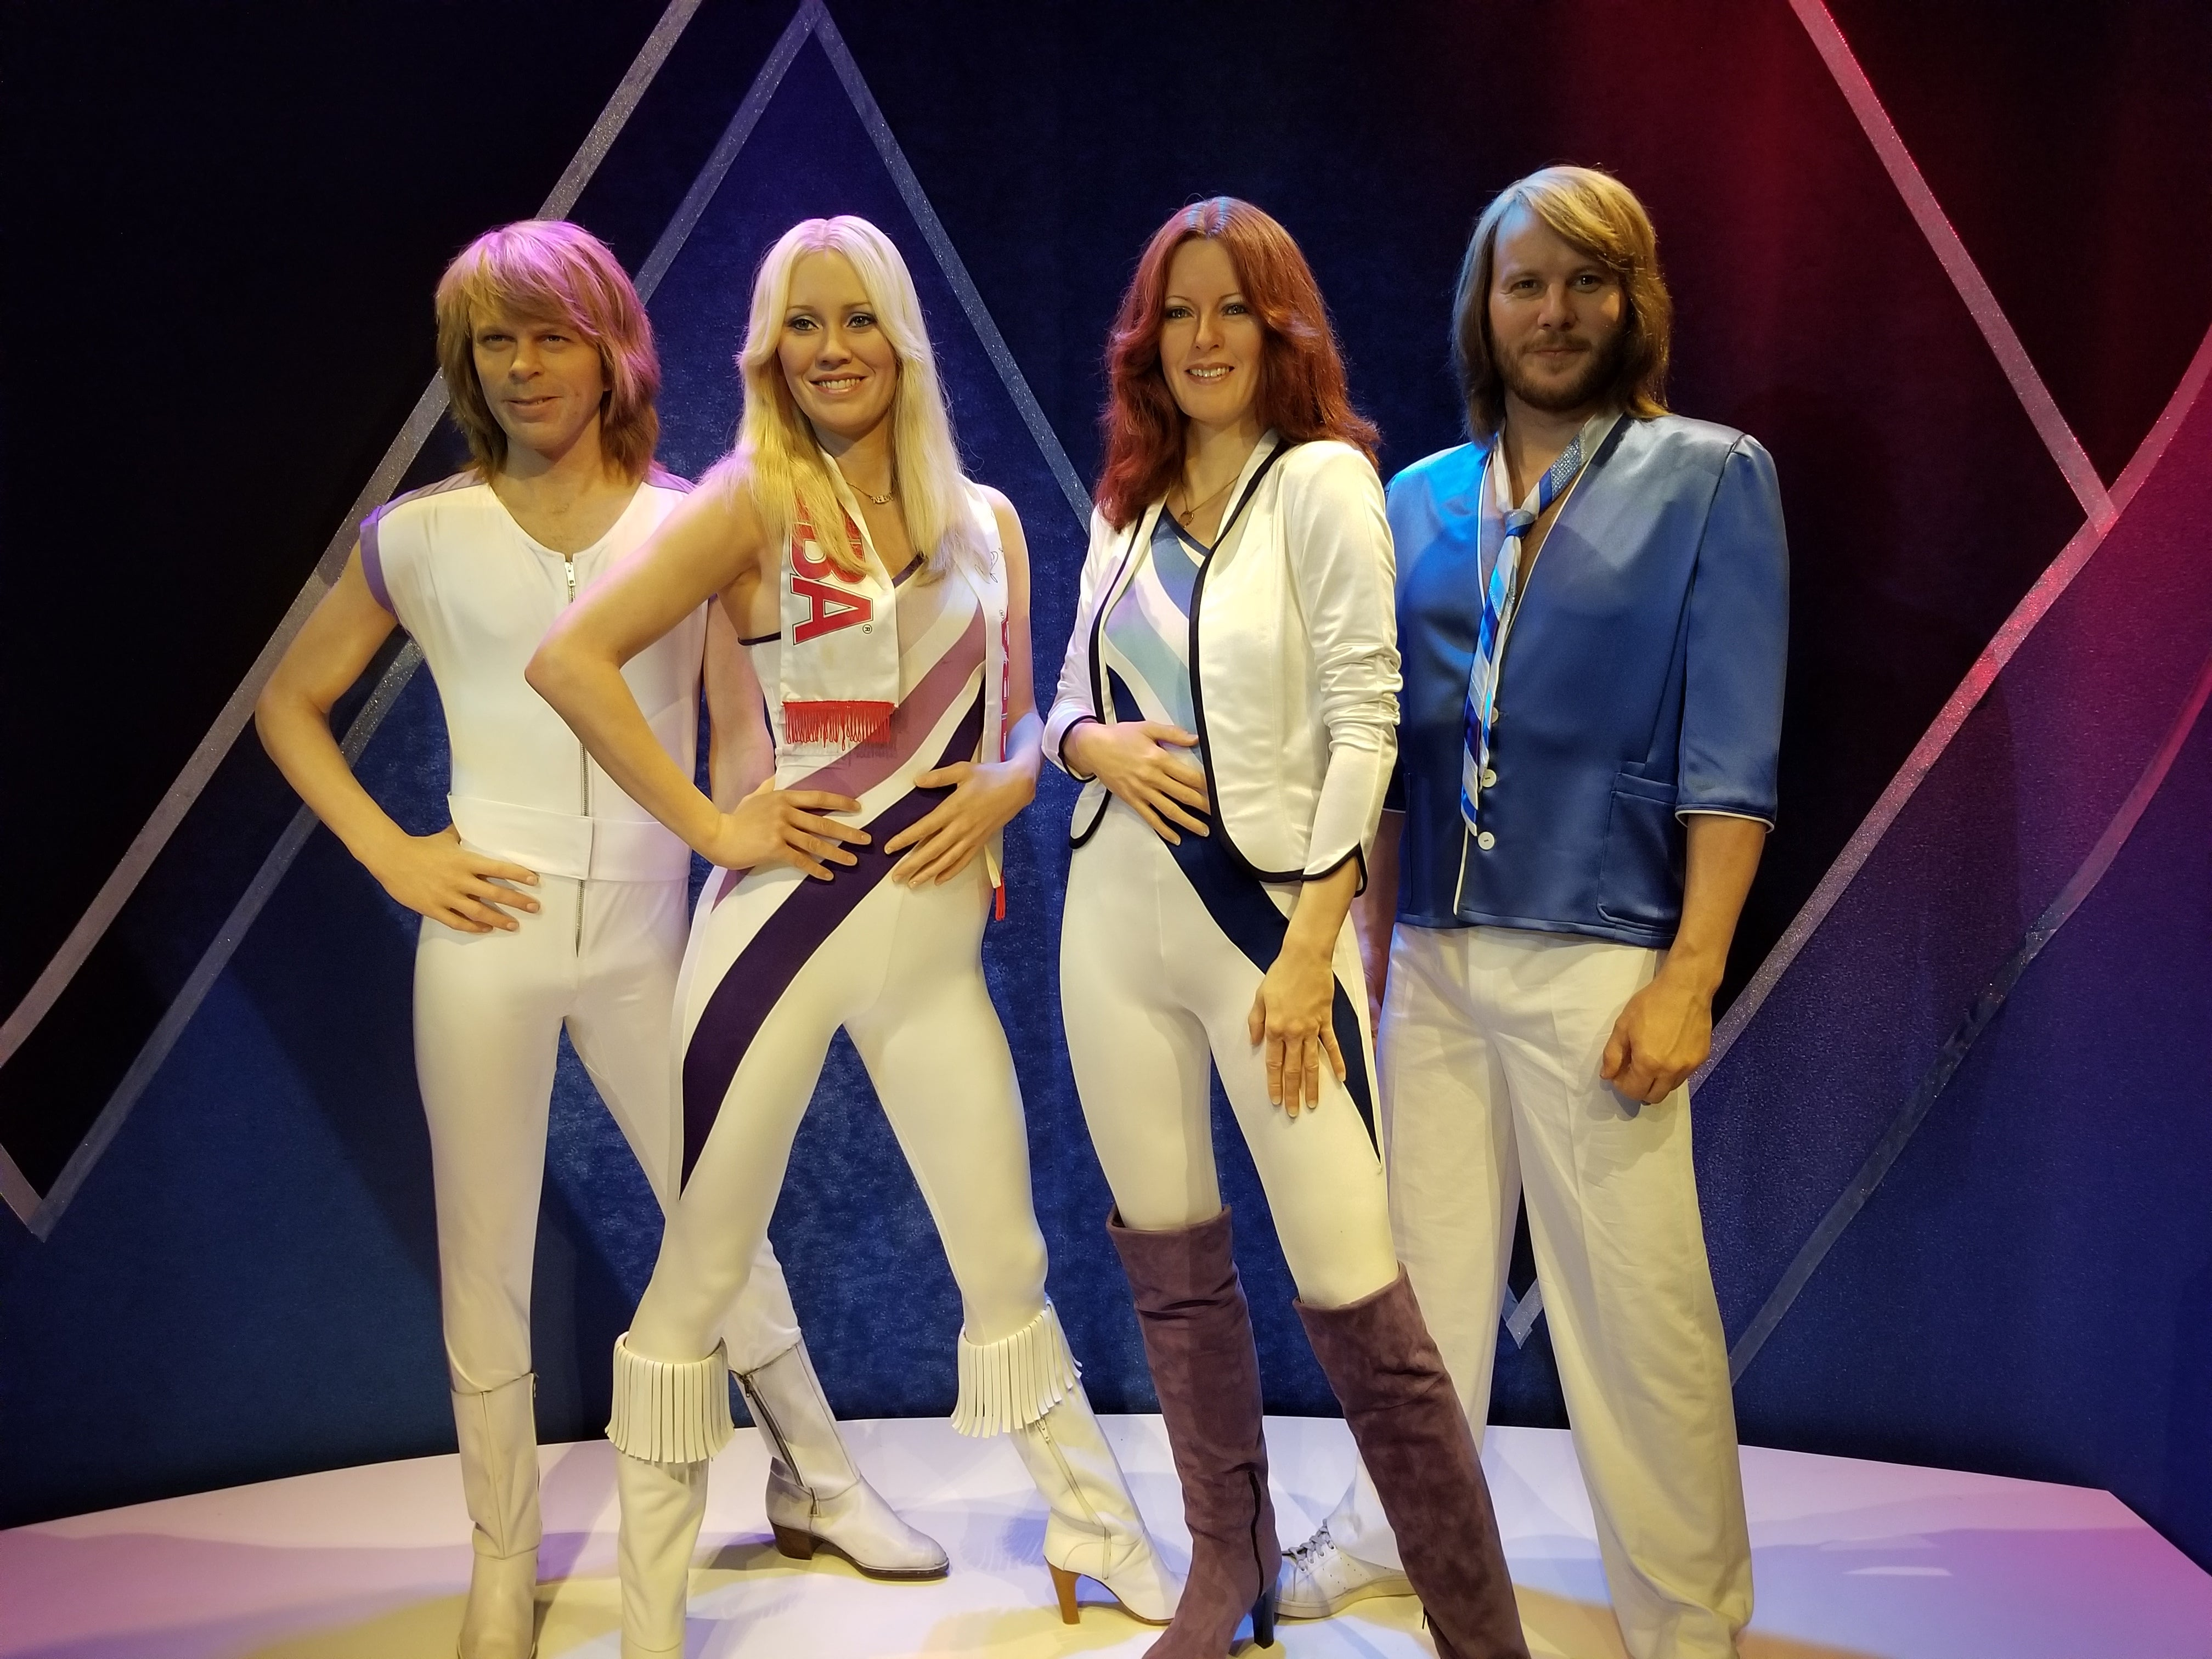 The band Abba as staties at their ABBA museum